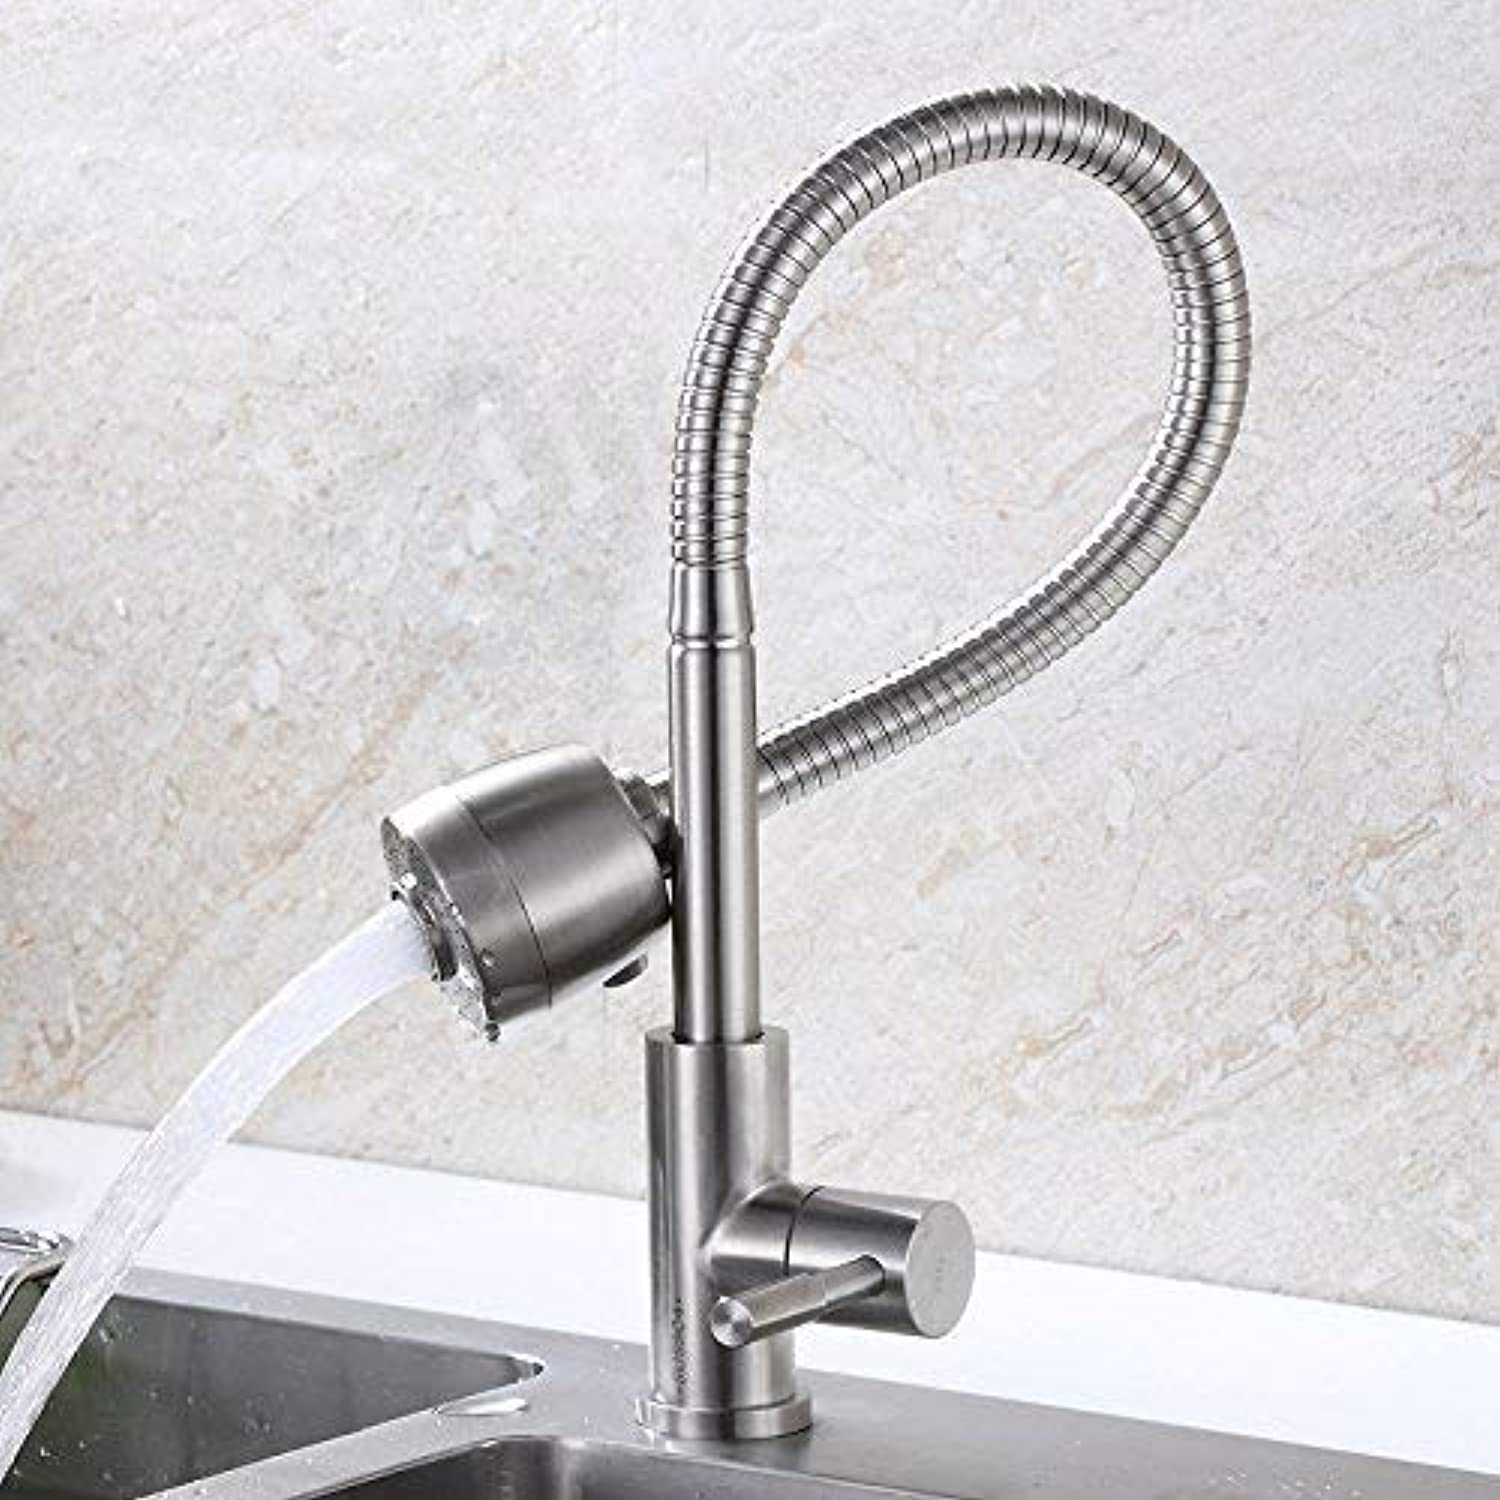 Oudan Basin Mixer Tap 304 Stainless Steel kitchen faucet single cold balcony basin sink dish washing basin of the brushed laundry pool B  Stainless steel single cold tap. (color   1)